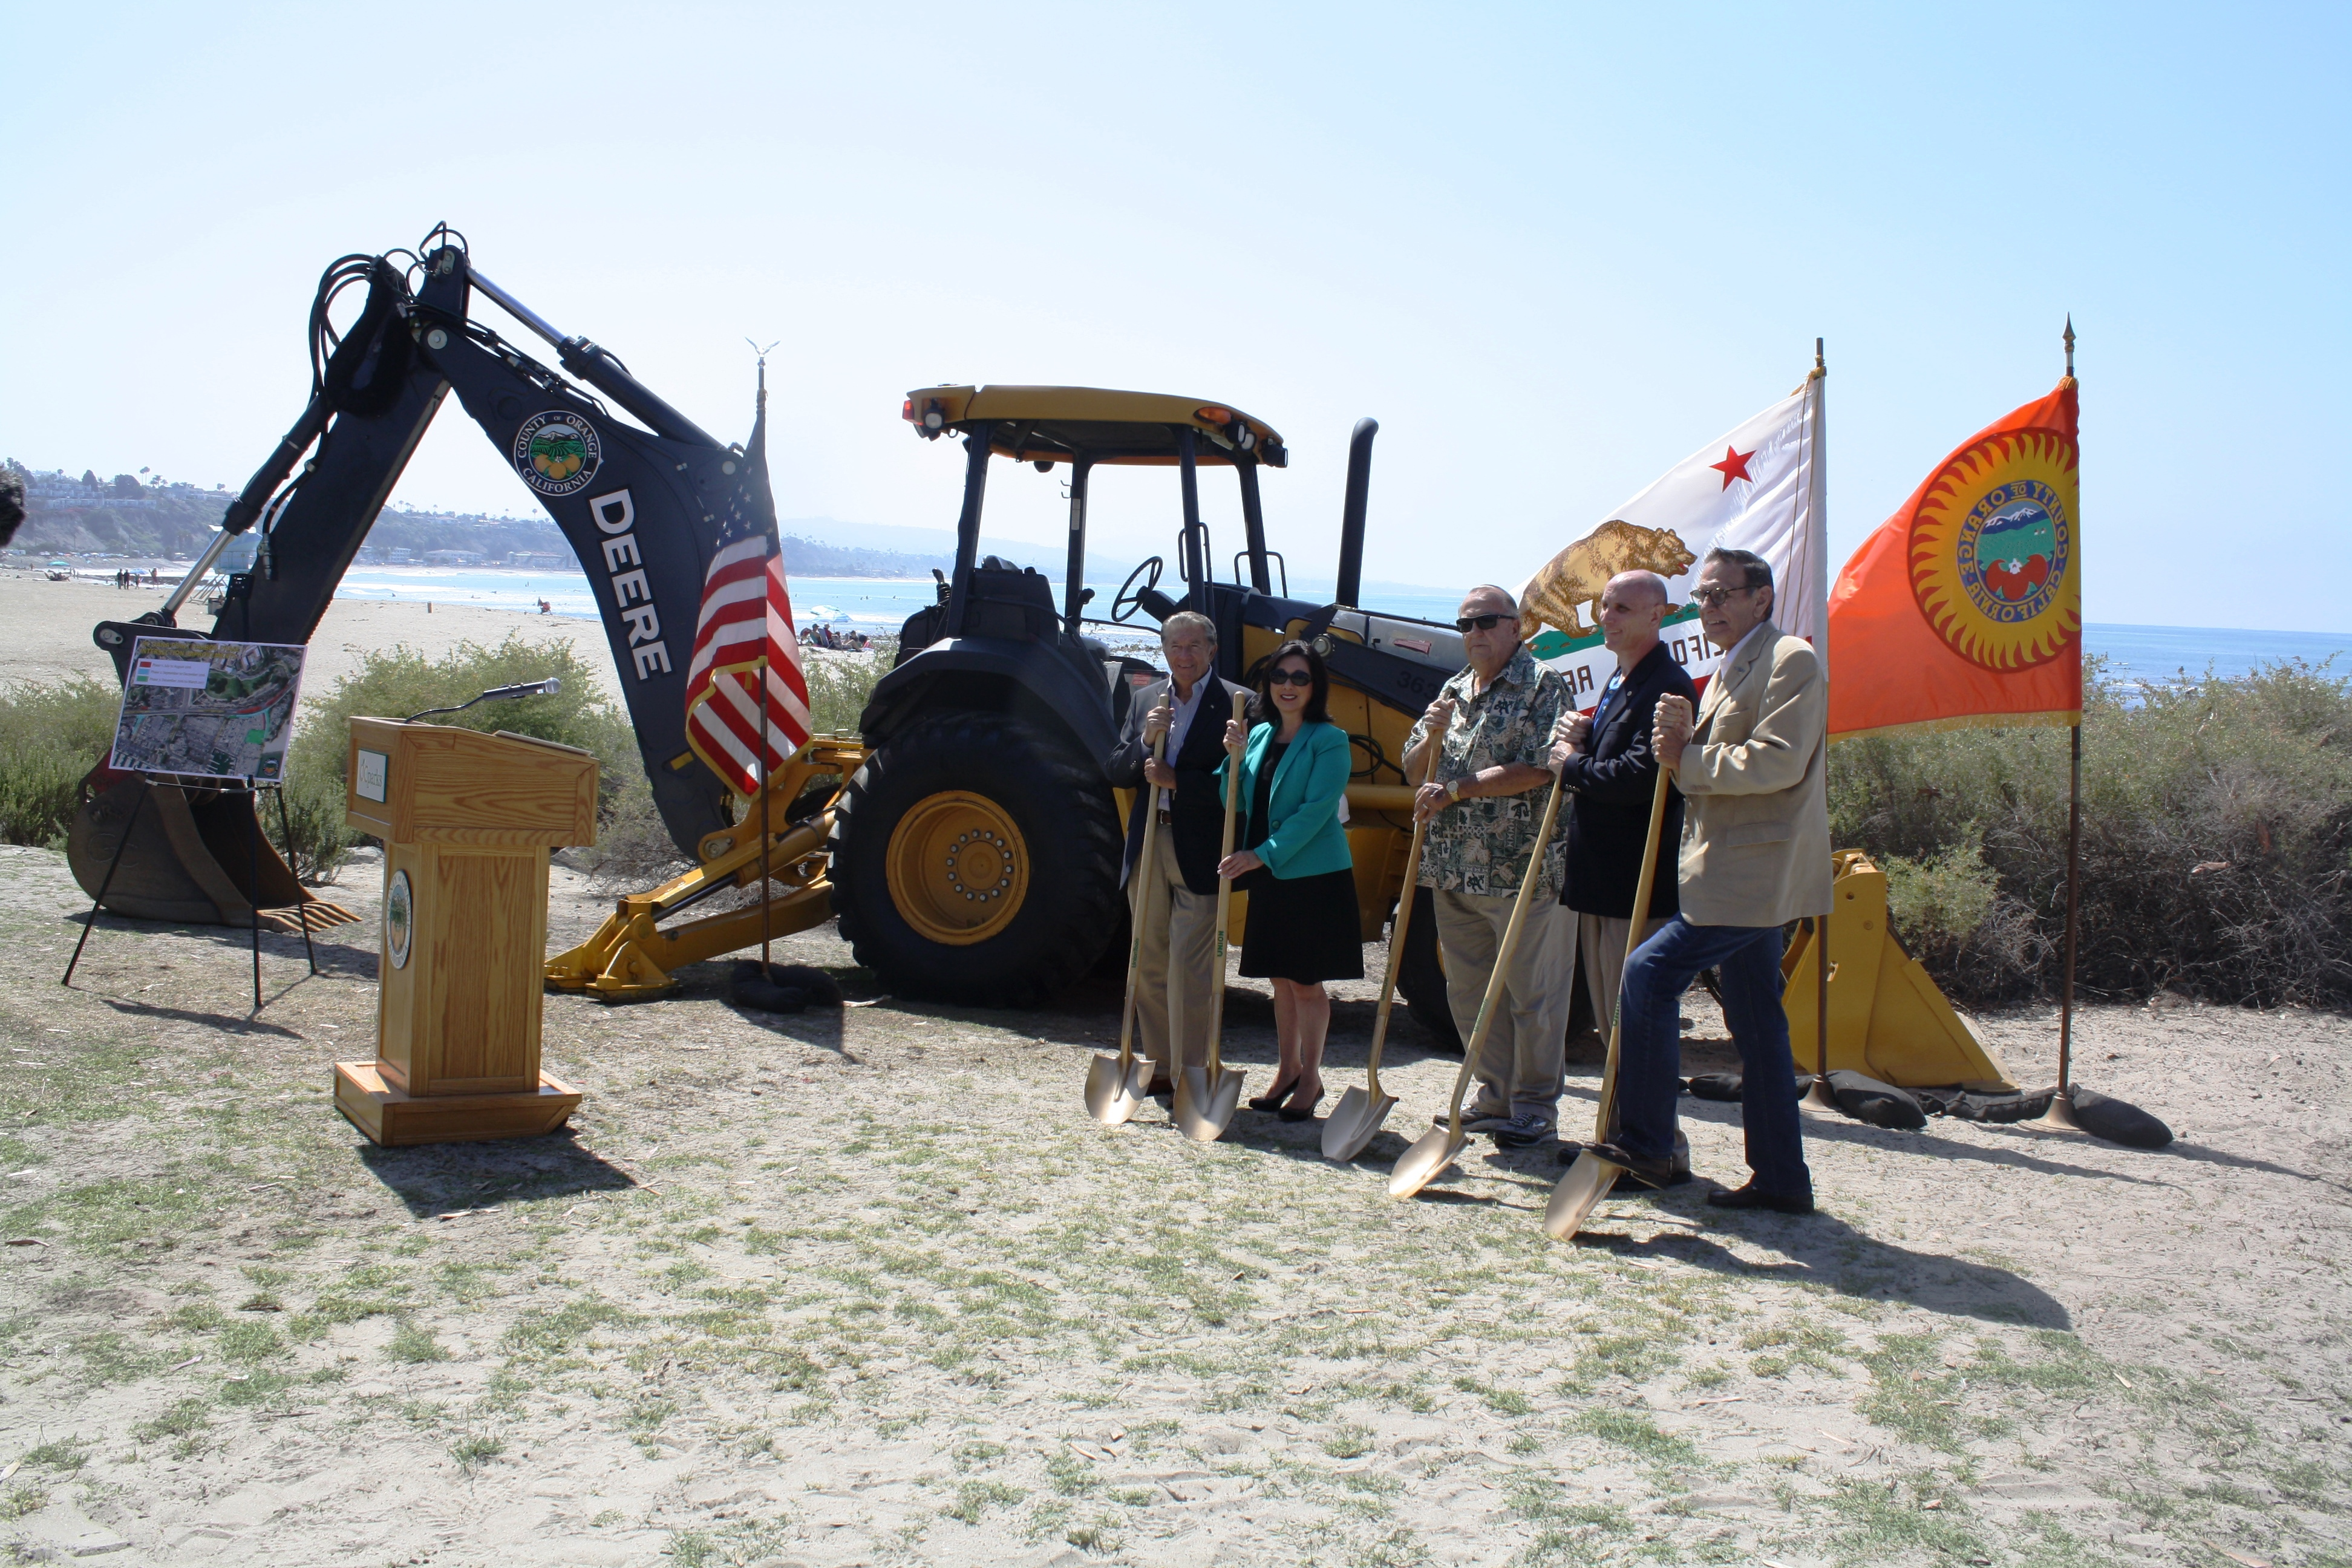 City, County officials hold a groundbreaking ceremony for the Dana Point Harbor revitalization project on Wednesday, June 29, 2016. Photo: Kristina Pritchett